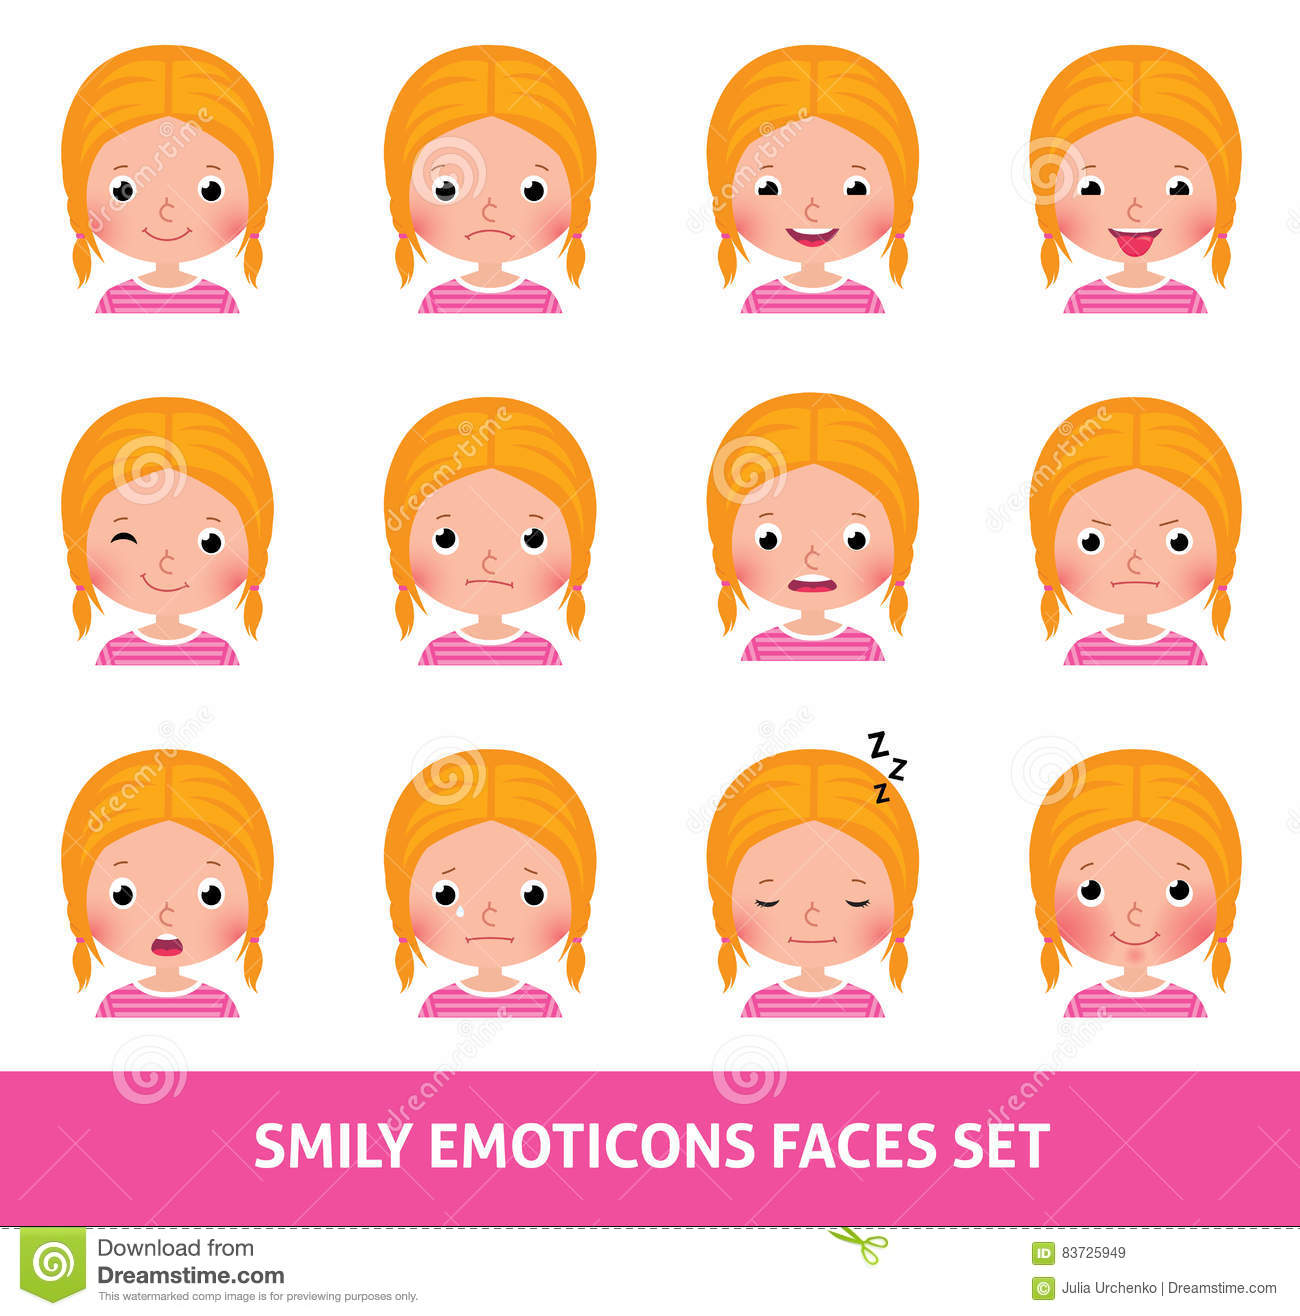 Girl child cute emoji set smily emoticons faces stock vector girl child cute emoji set smily emoticons faces buycottarizona Images